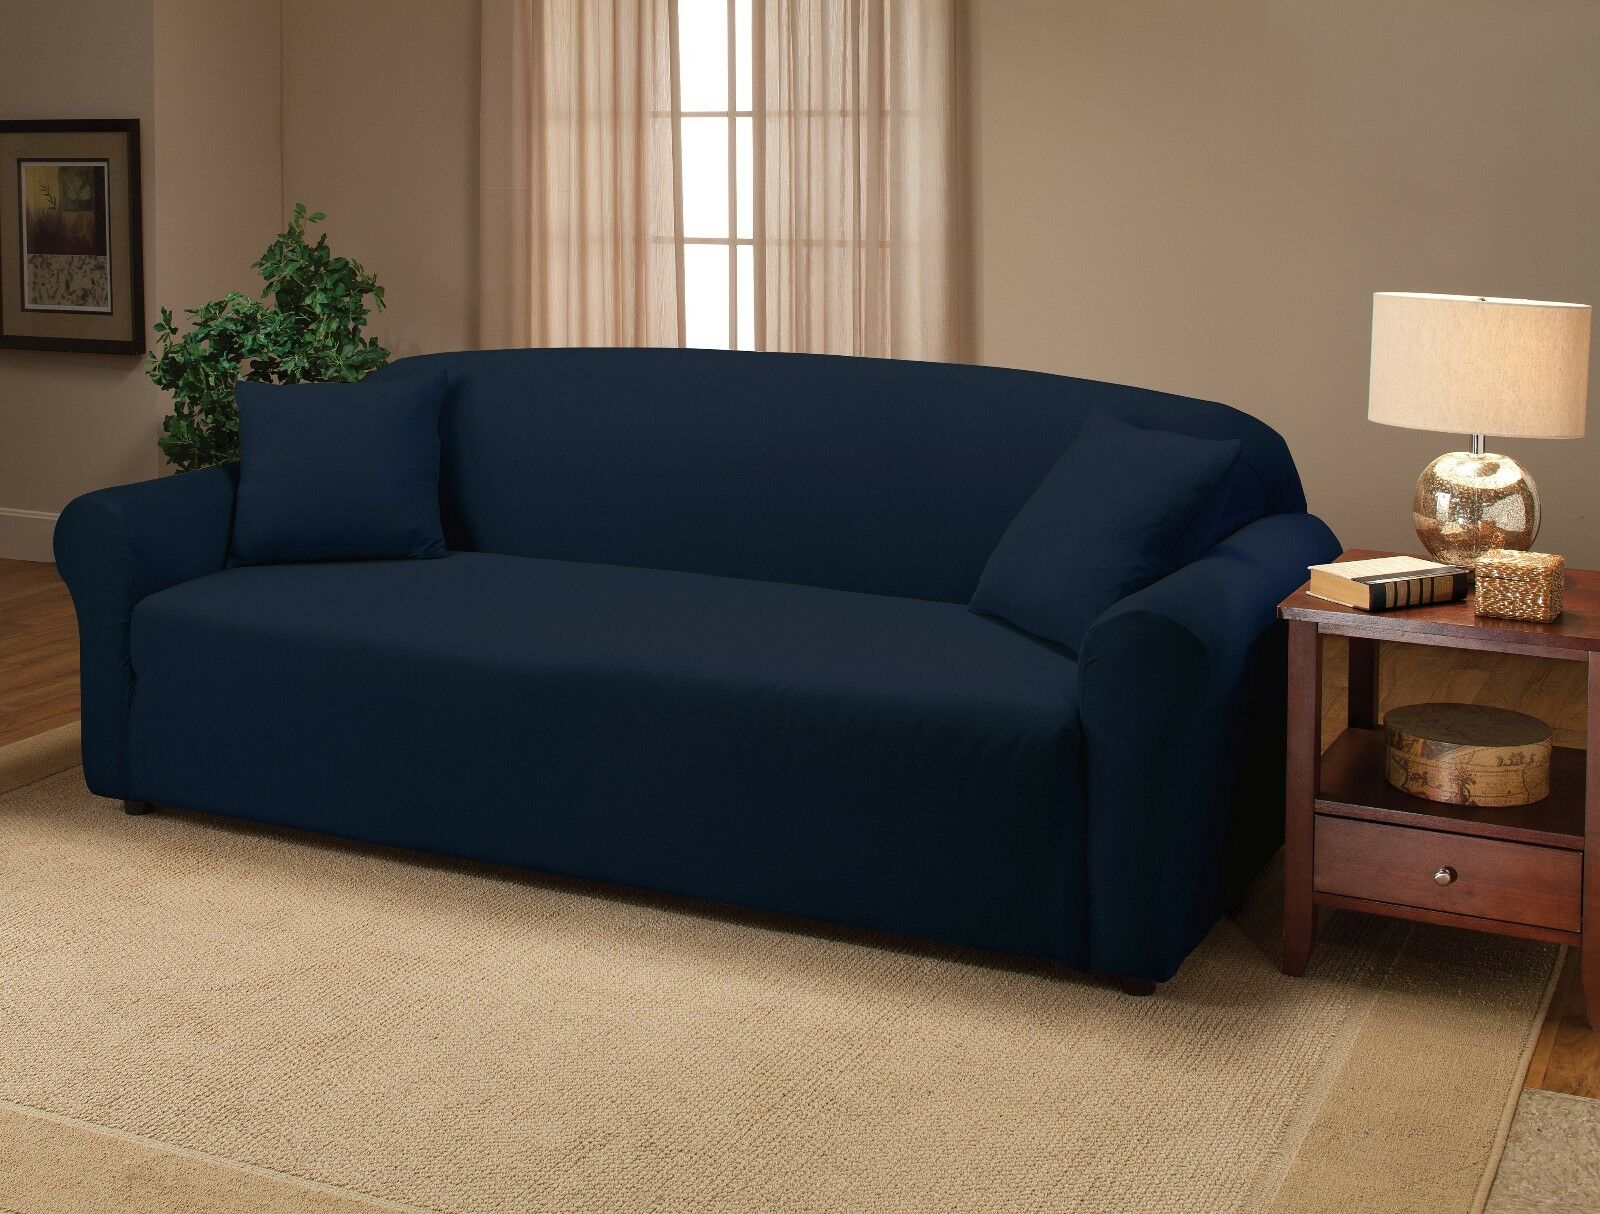 Navy Blue Jersey Couch Stretch Slipcover Furniture Covers Chair Loveseat Sofa Ebay